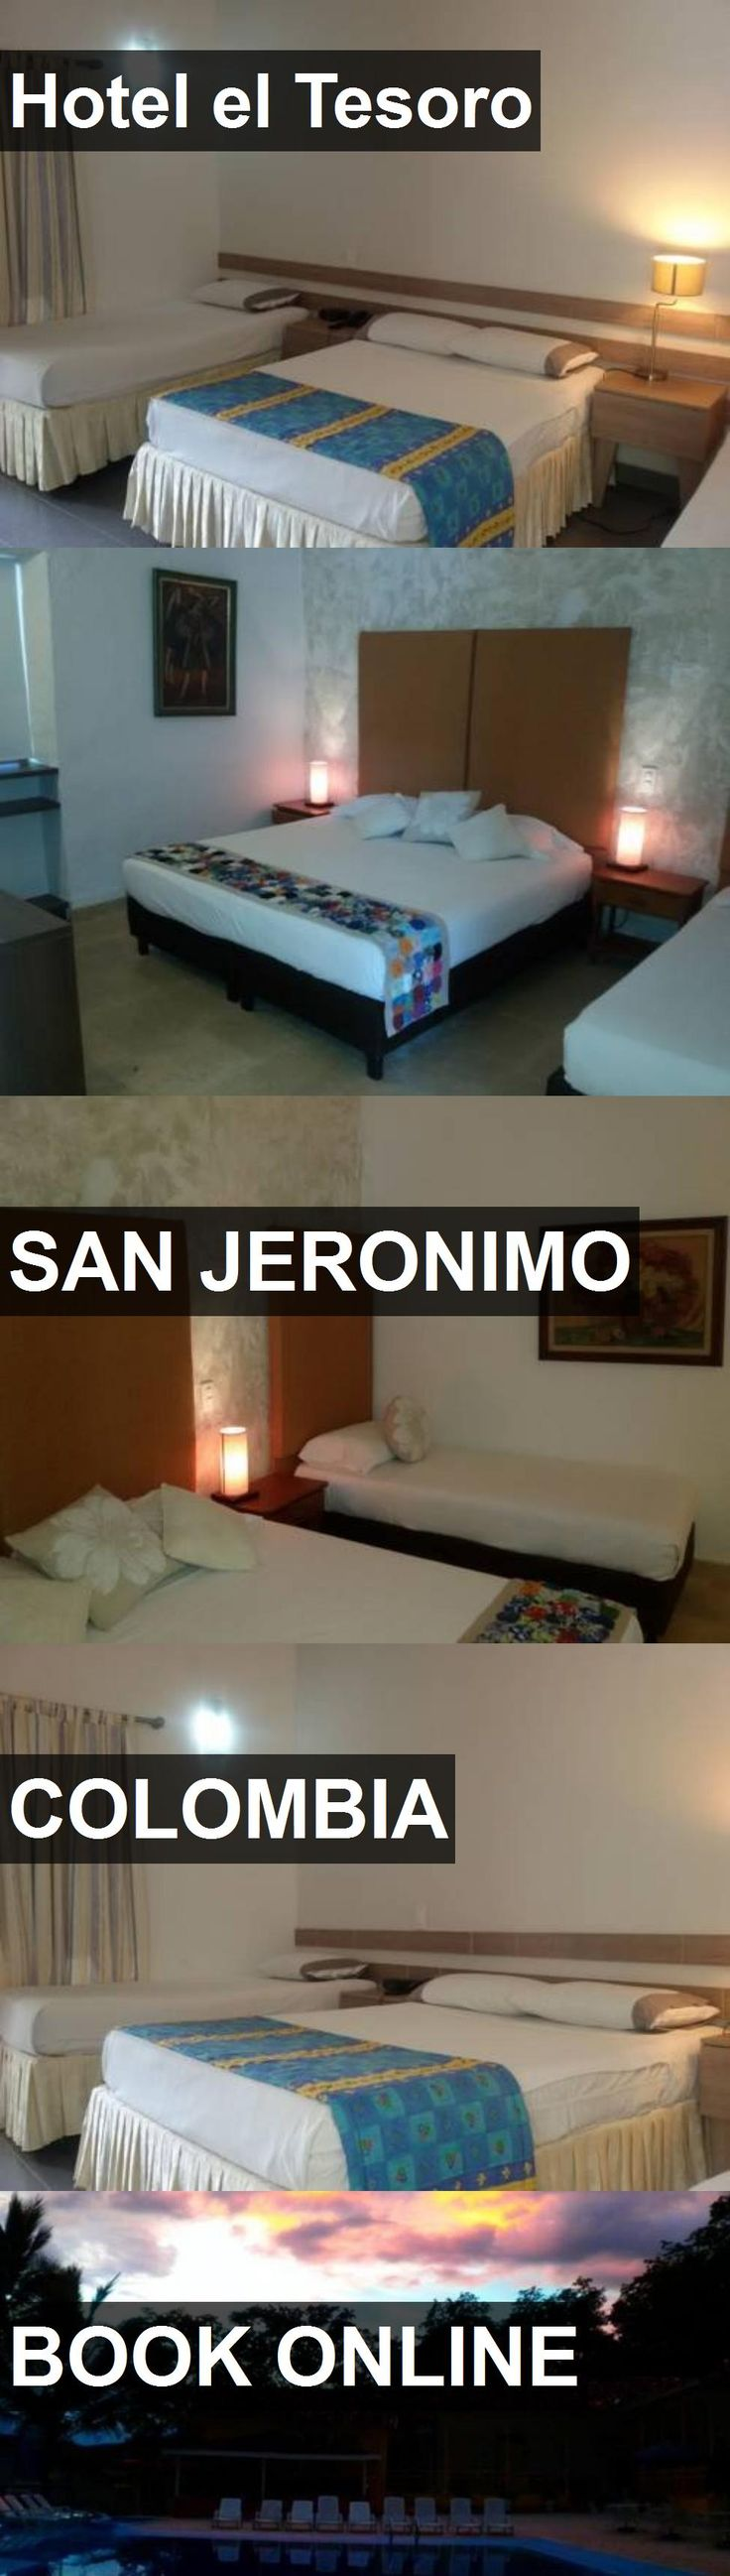 Hotel Hotel el Tesoro in San Jeronimo, Colombia. For more information, photos, reviews and best prices please follow the link. #Colombia #SanJeronimo #hotel #travel #vacation